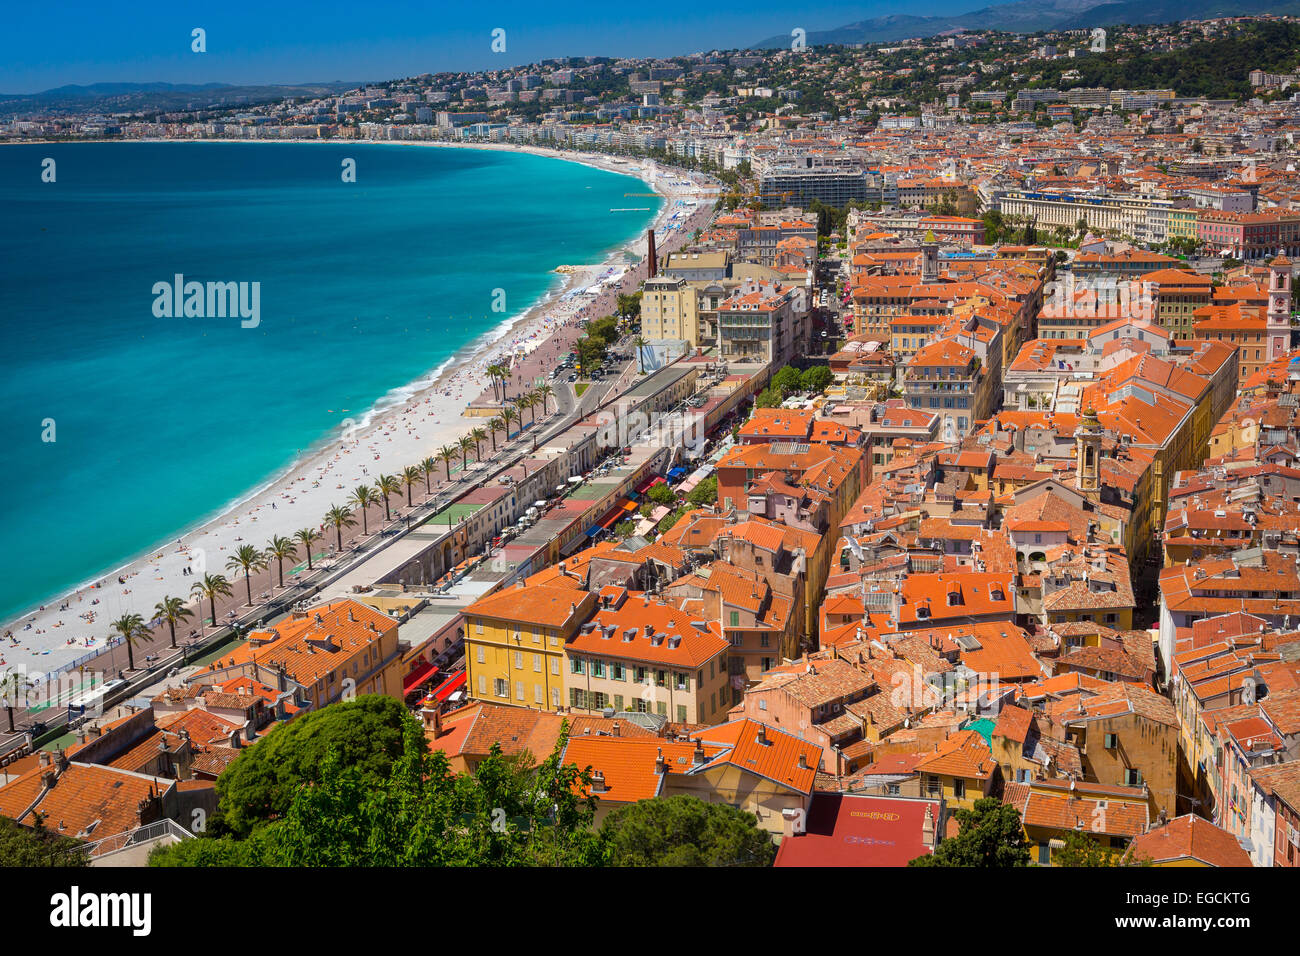 Promenade des Anglais from above Nice, France - Stock Image